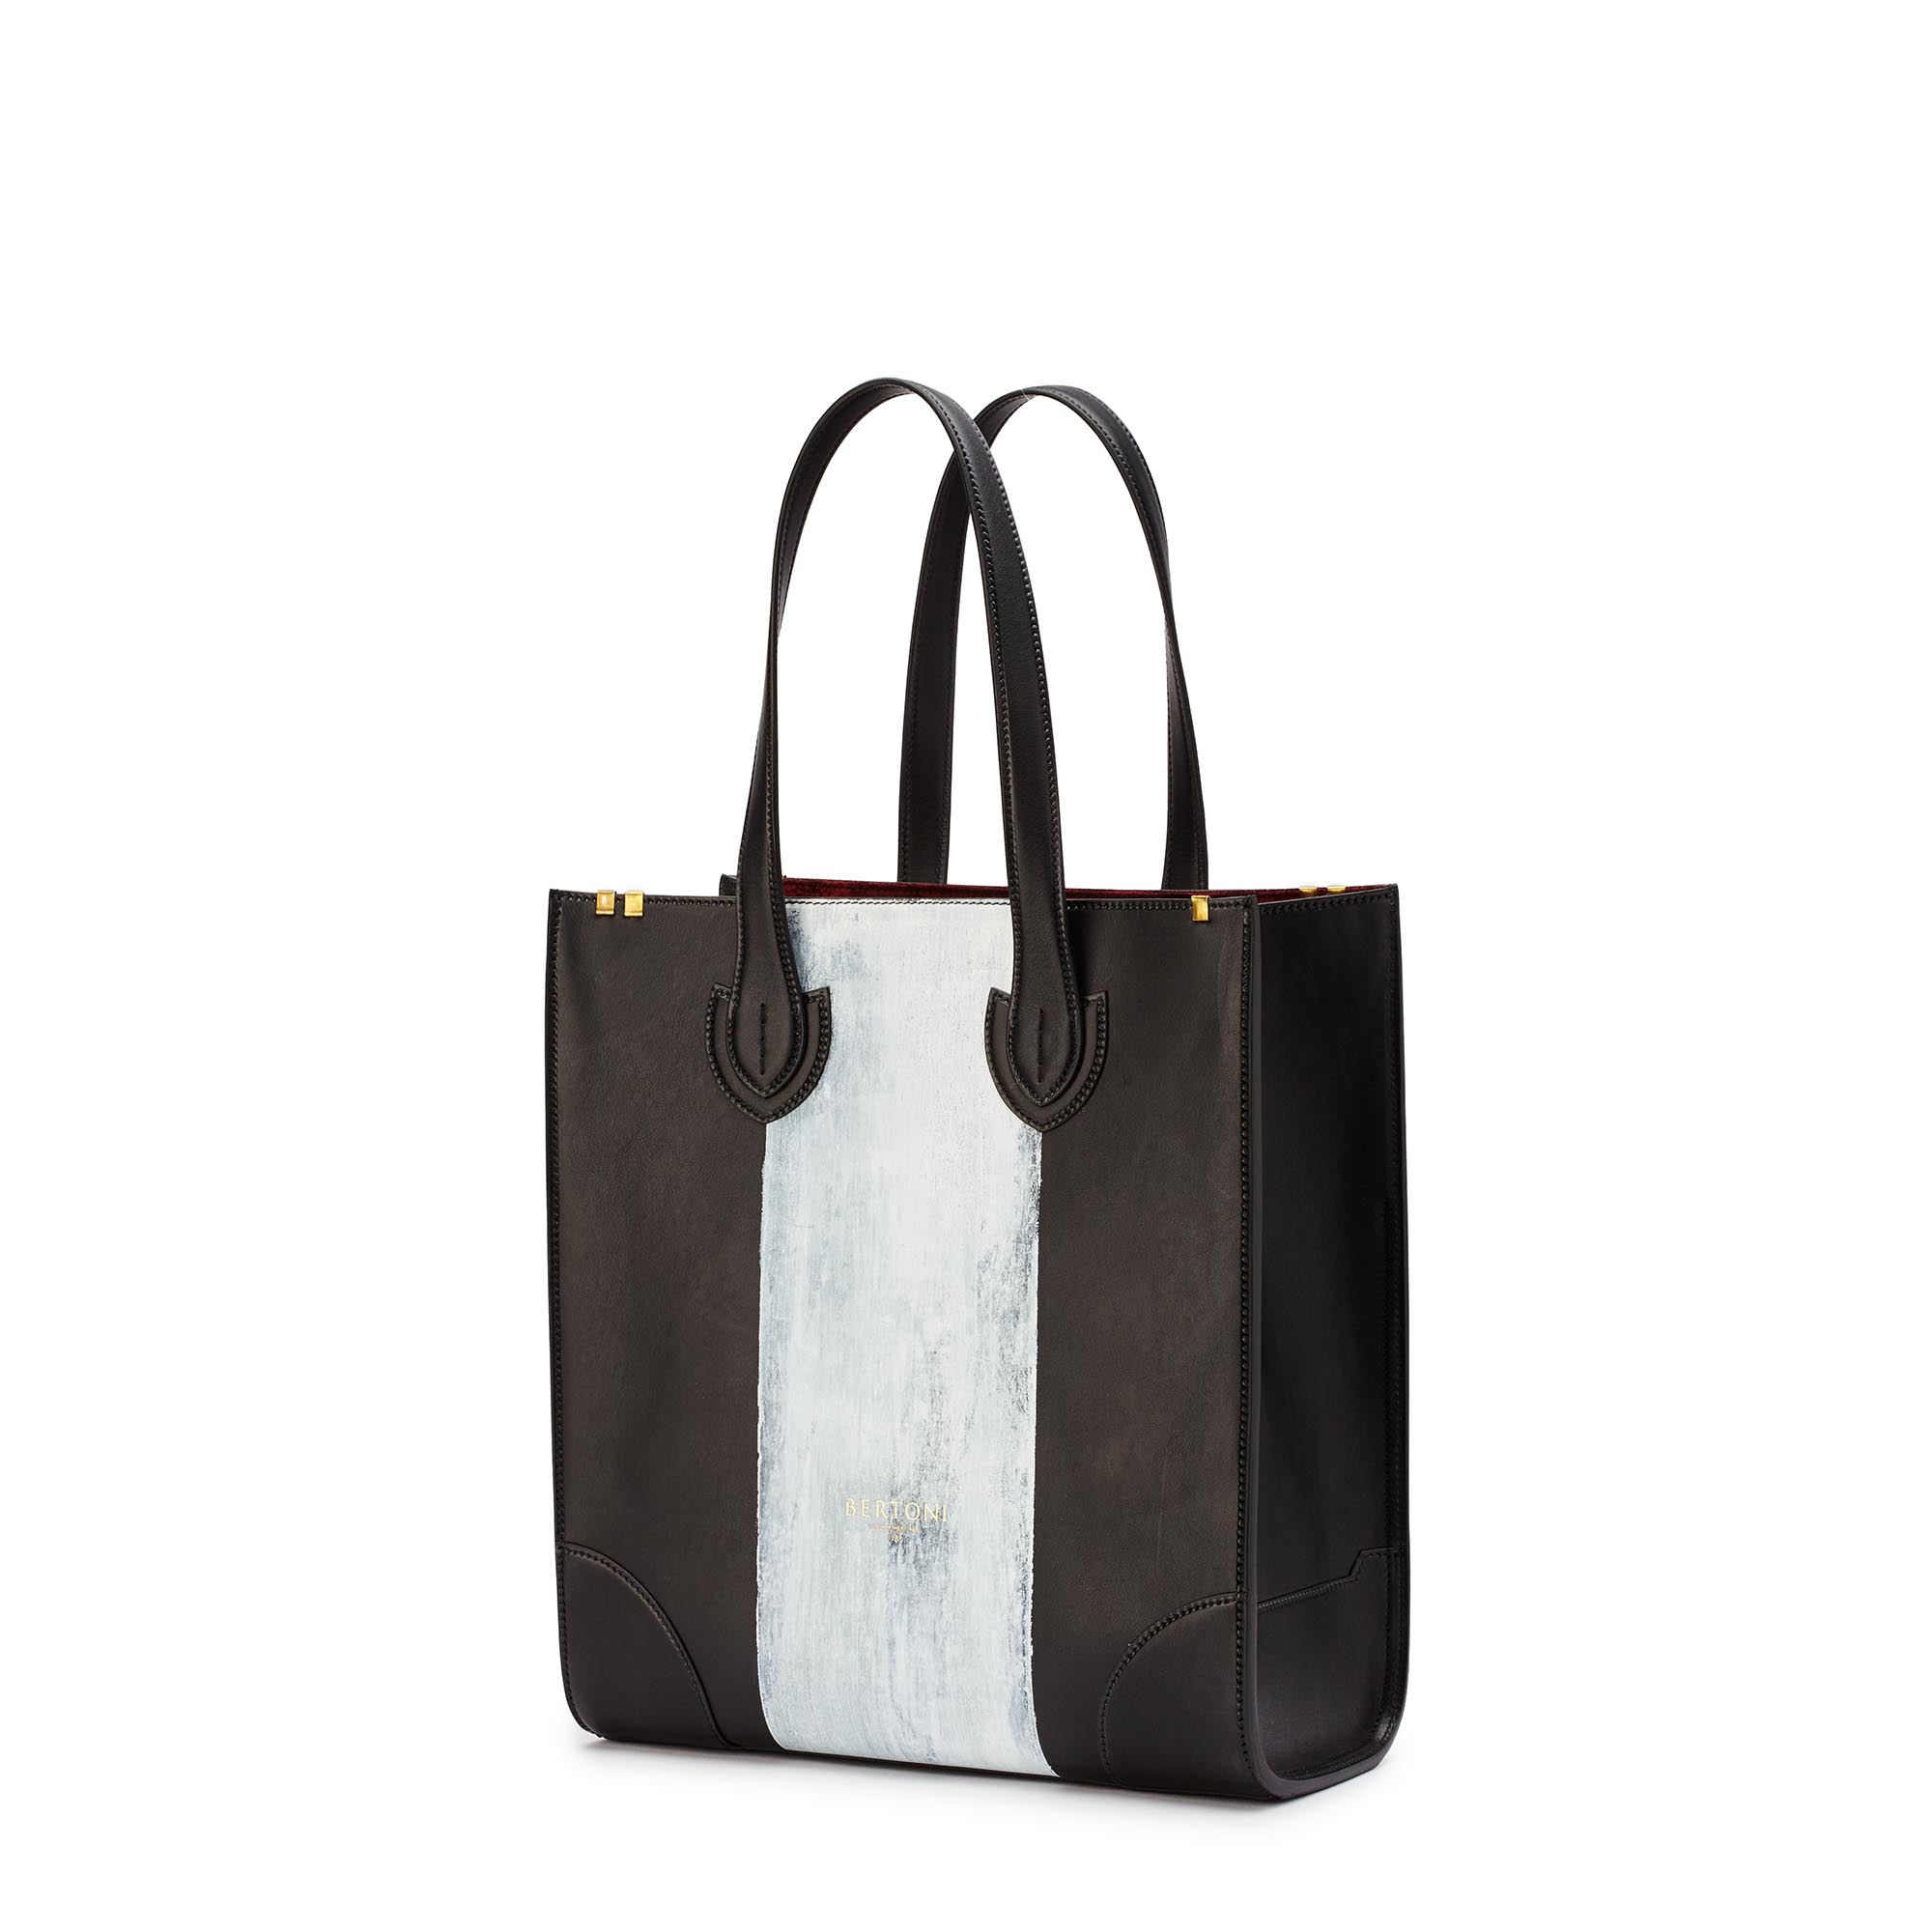 Signature-Tote-black-rock-calf-bag-Bertoni-1949_02